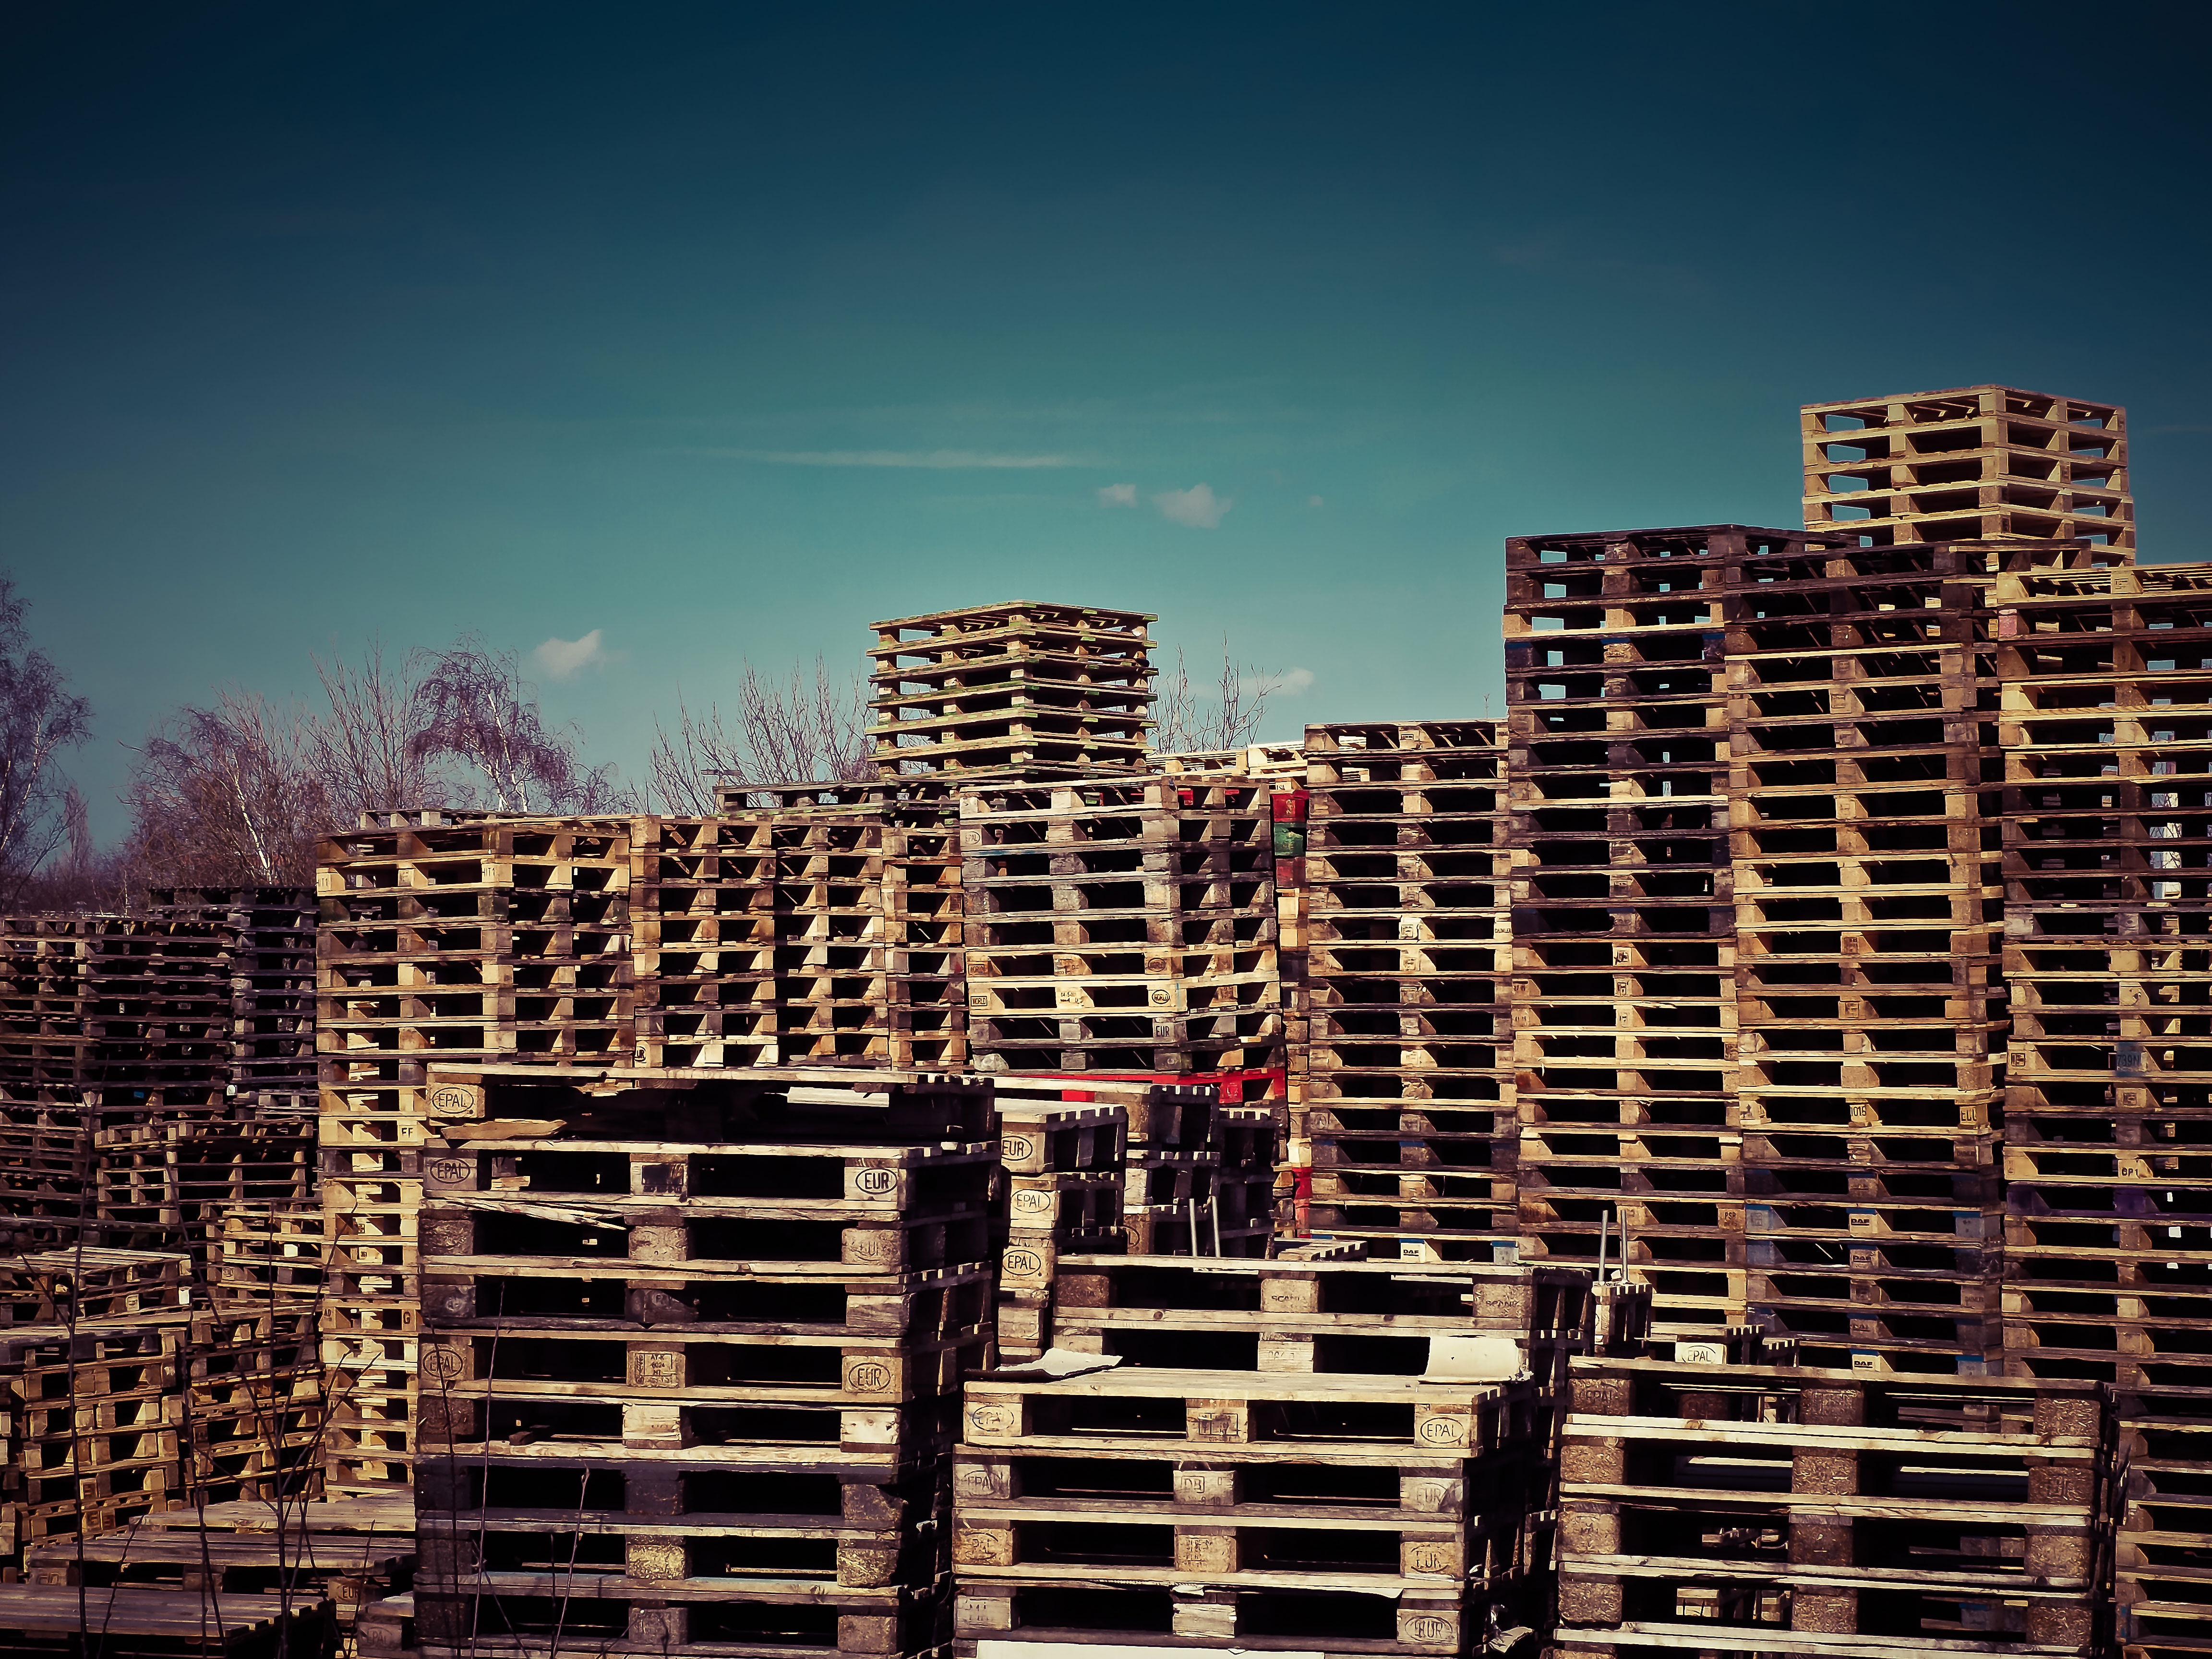 wooden-pallets-1258486